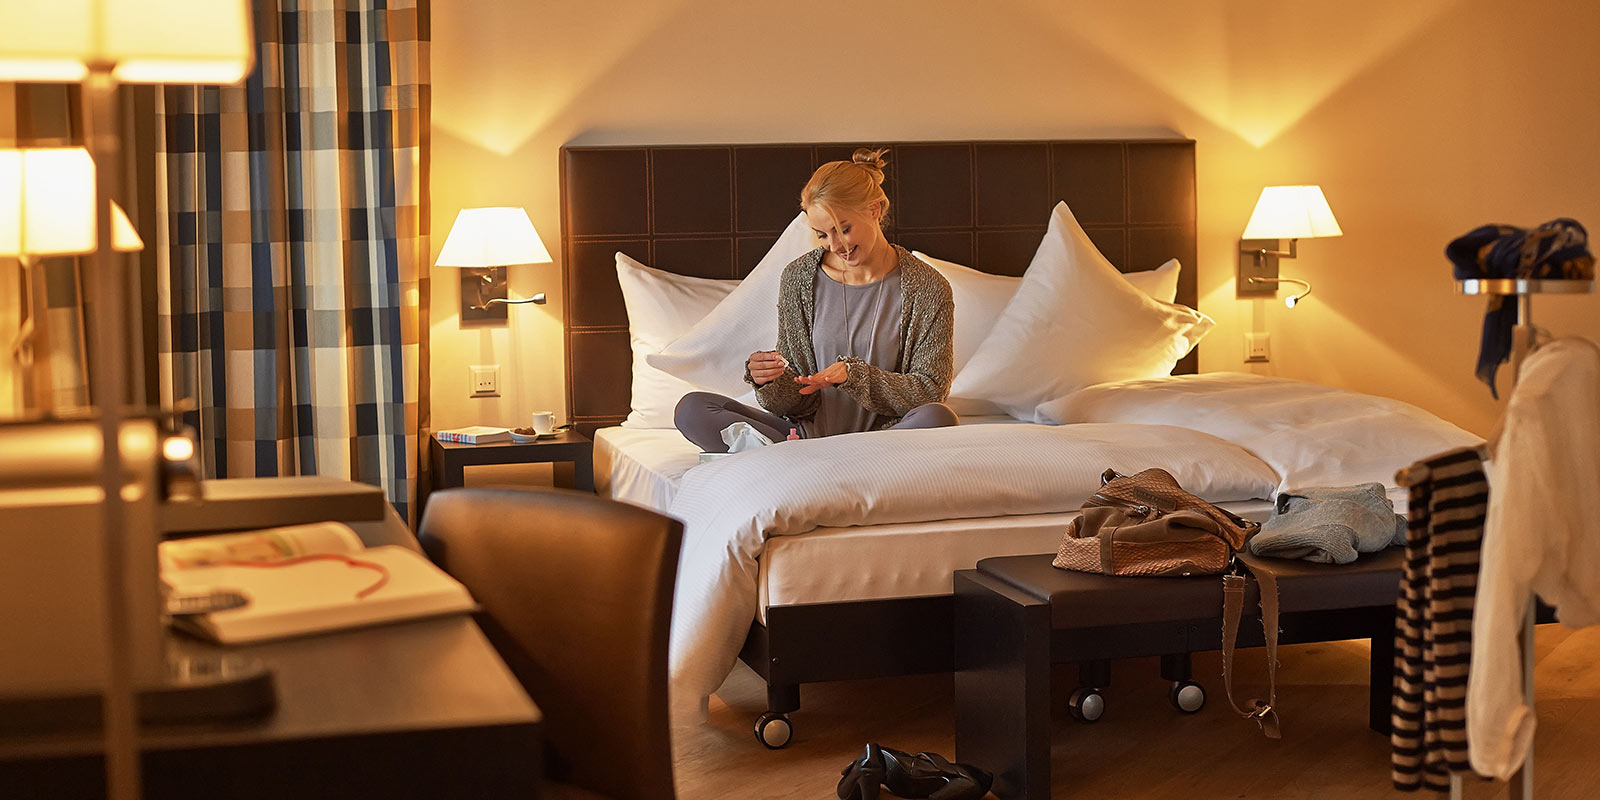 Room-junior-suiten-hotel-seepark-thun-congress-schweiz_04.jpg